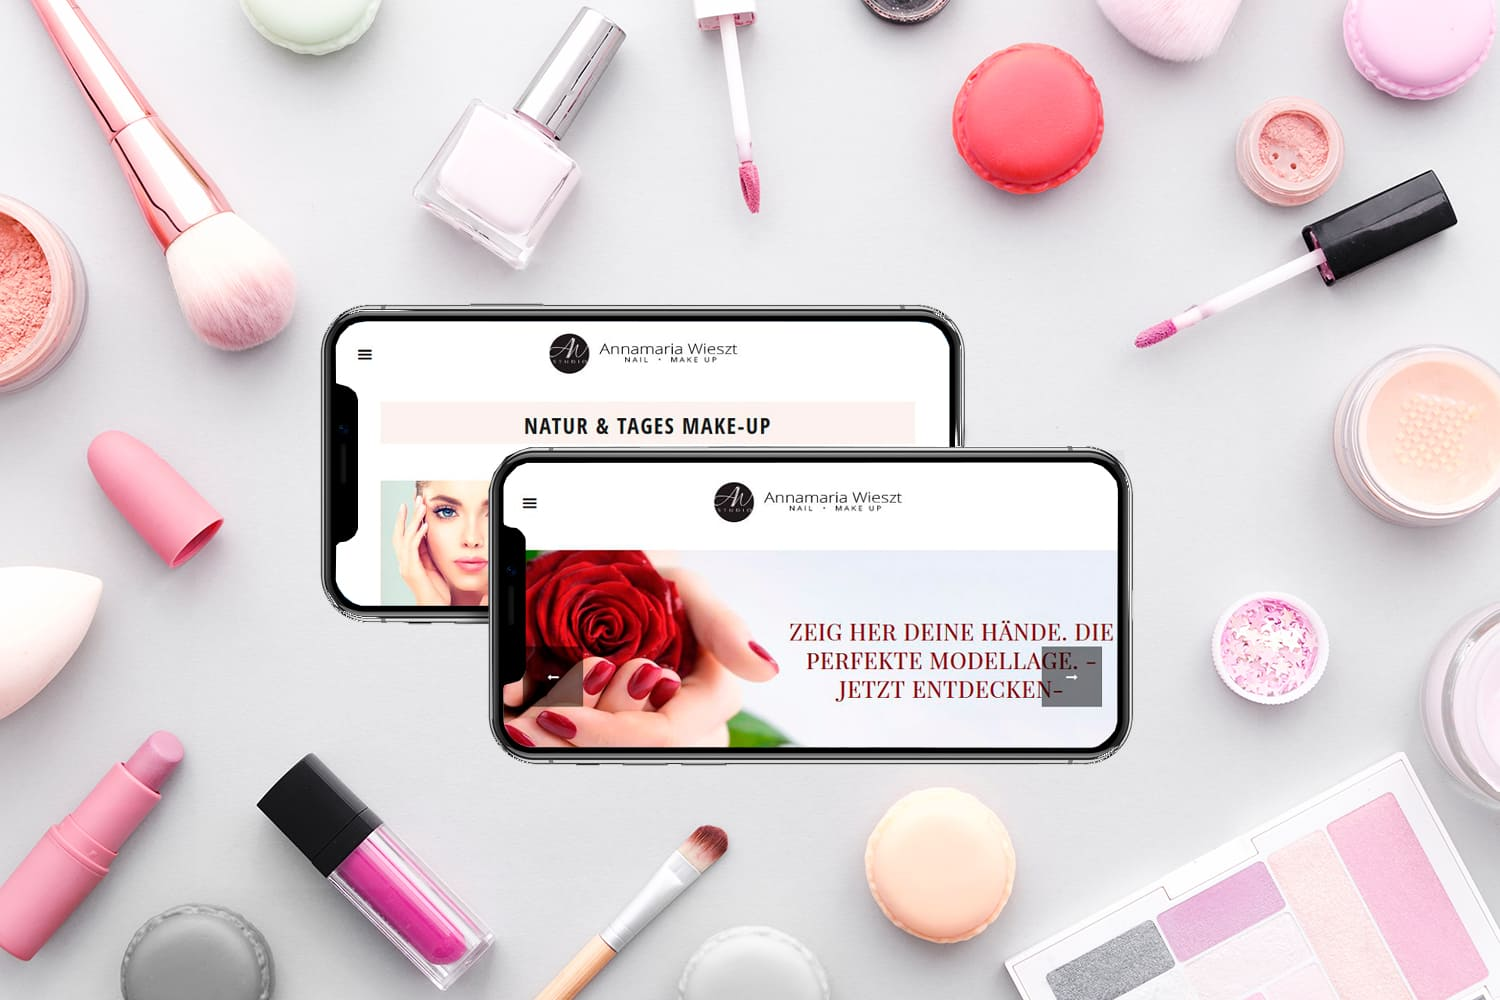 Onlineshop AW Nails in Ratingen